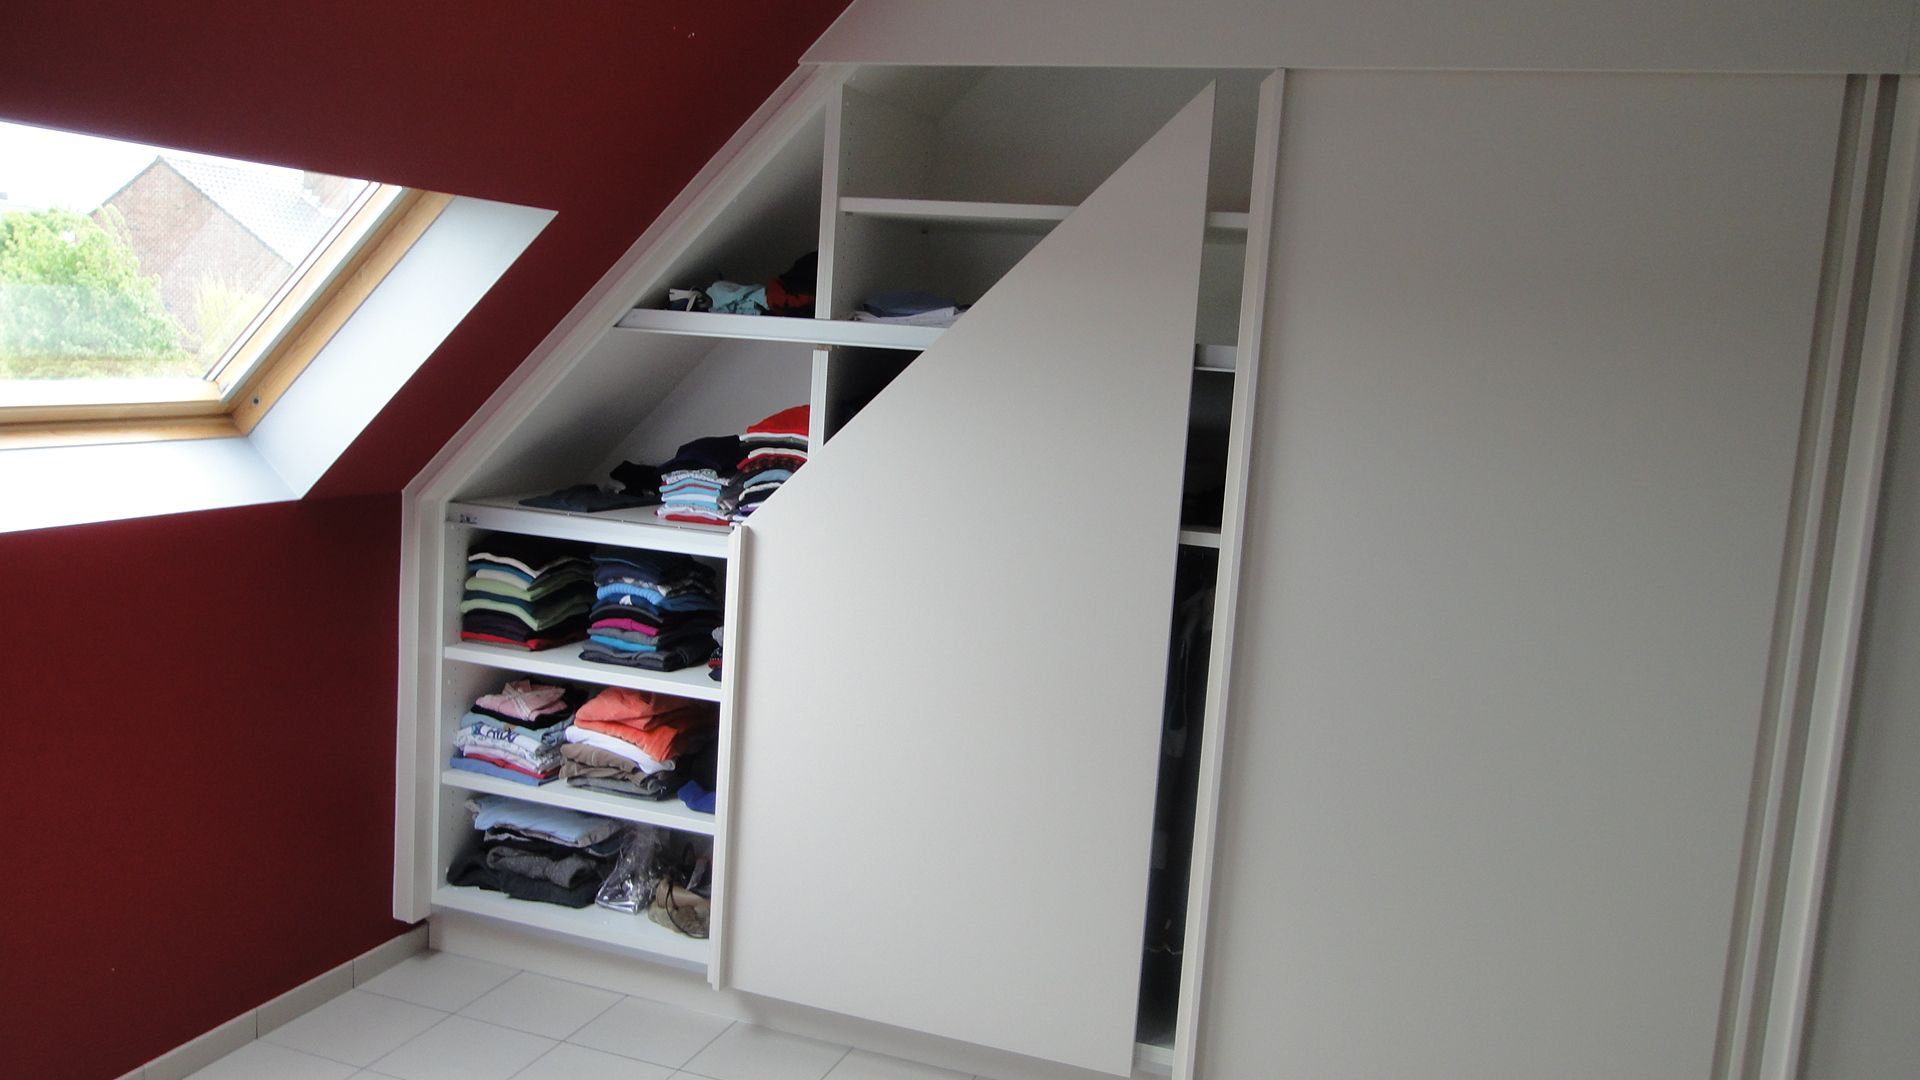 dressing en sous pente ikea ikea stuva storage combination with doors deep enough to hold adult. Black Bedroom Furniture Sets. Home Design Ideas